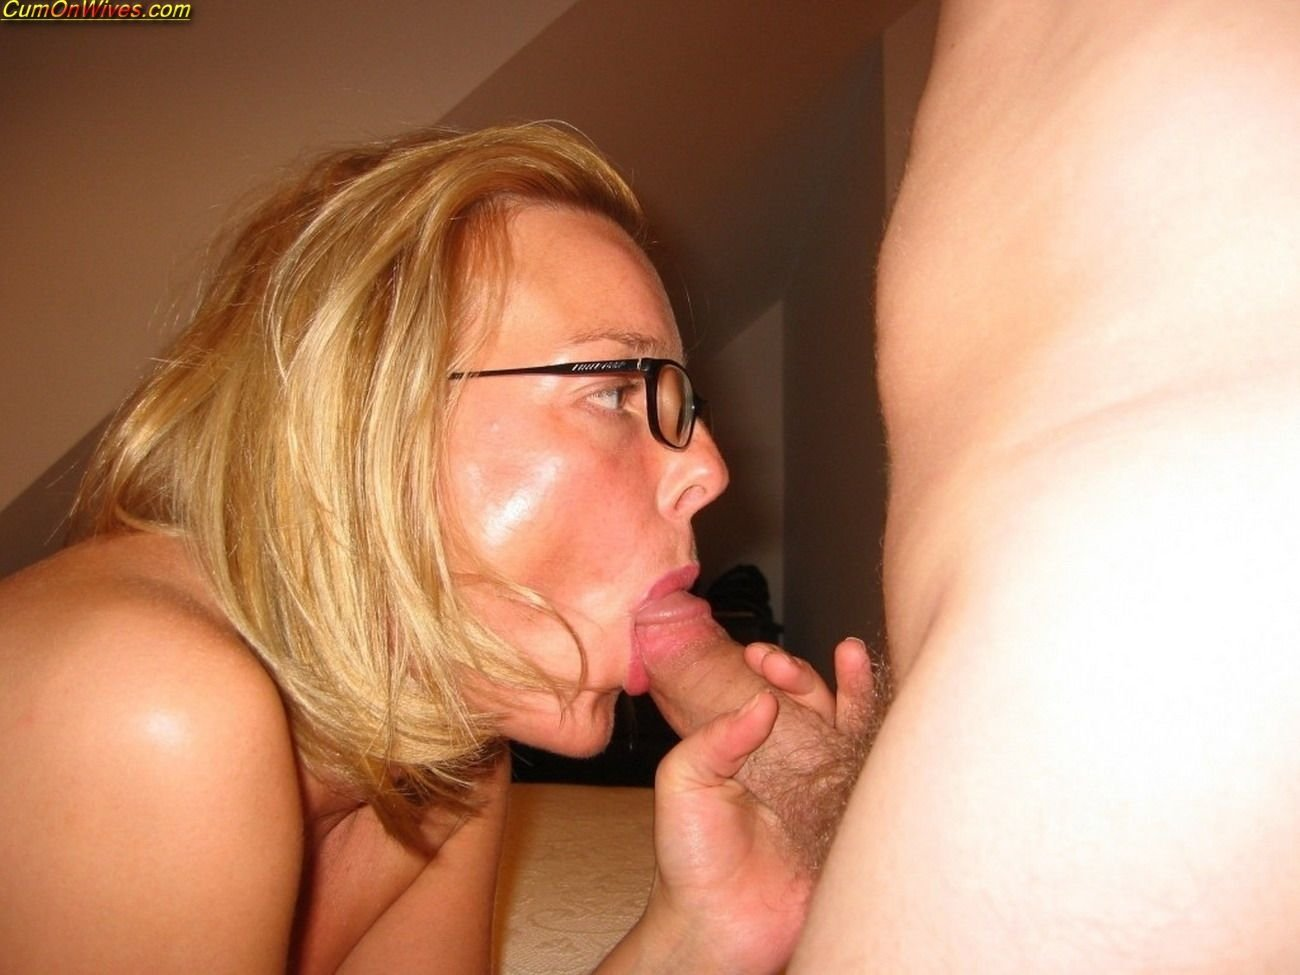 amateur milf interracial sex